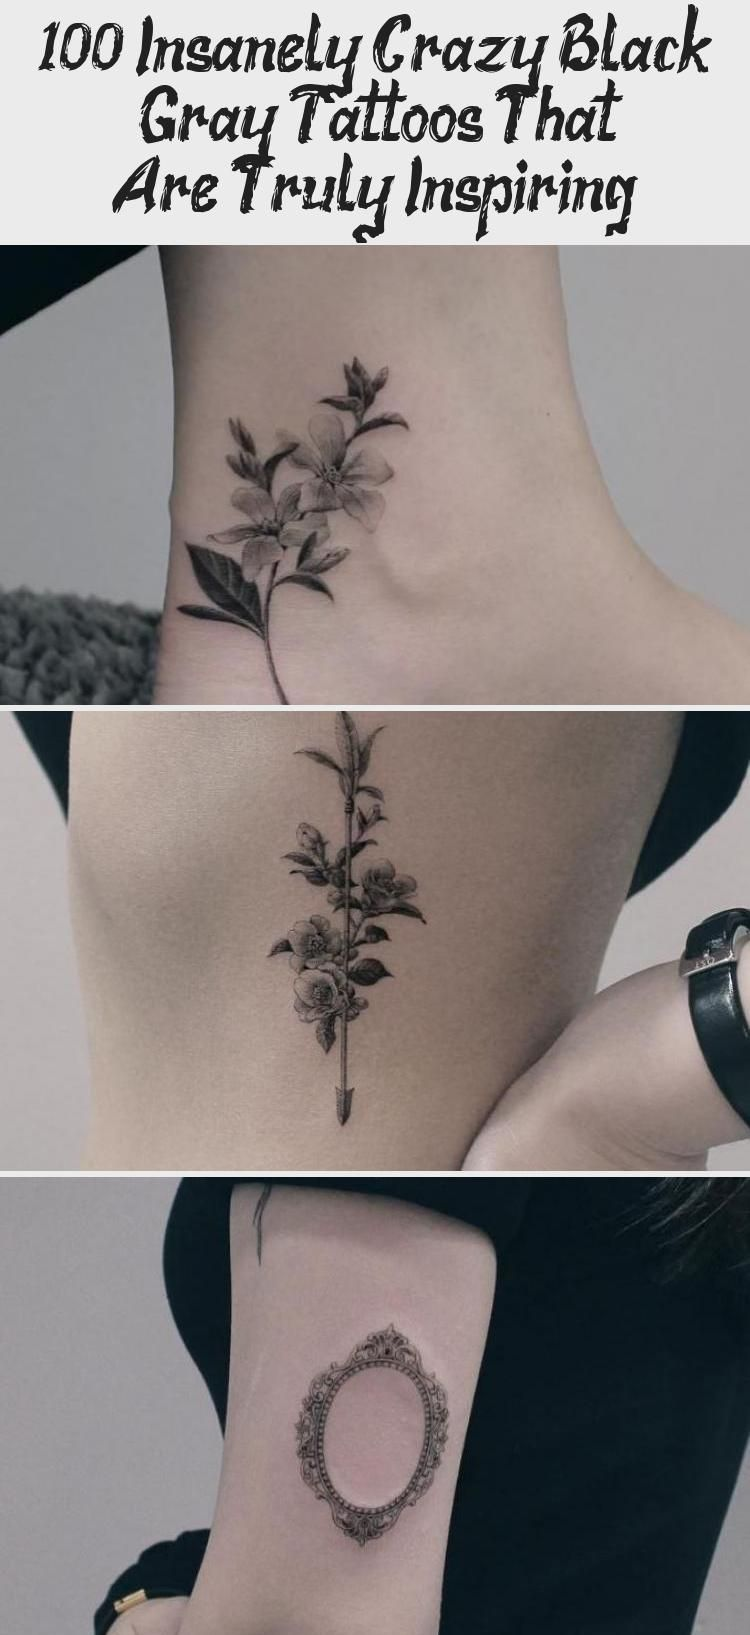 100 insanely crazy black gray tattoos that are truly